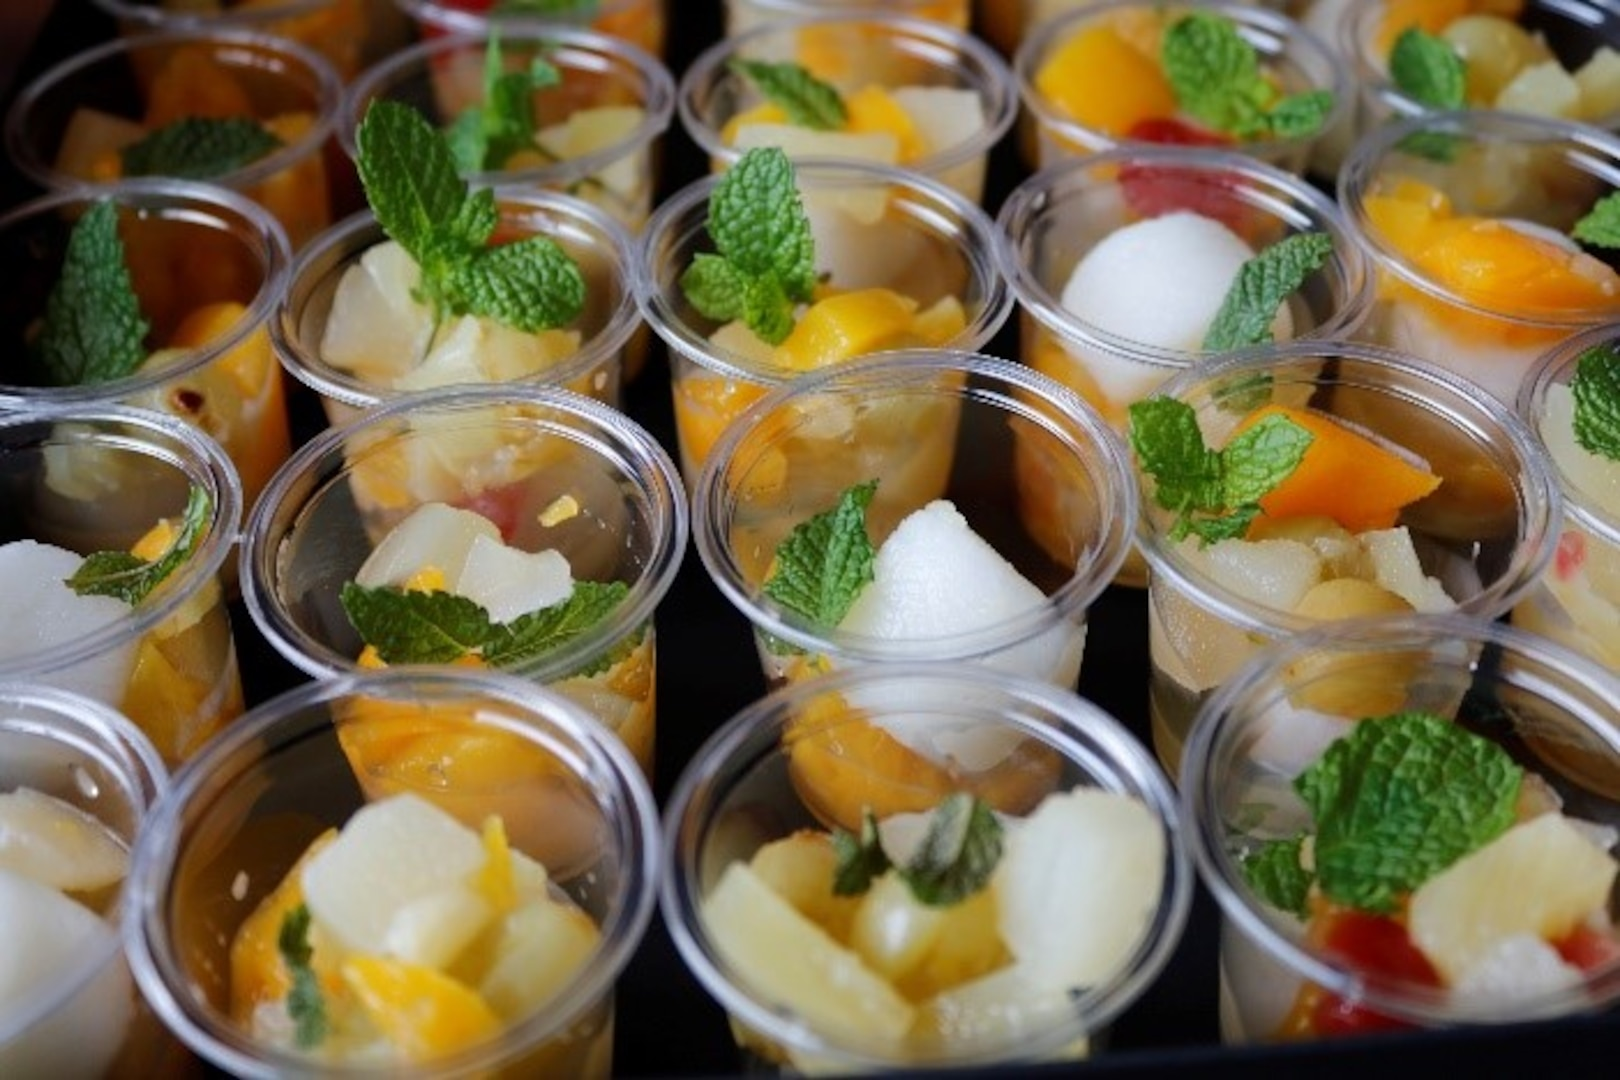 Attendees sampled traditional Japanese sweets, such as Matcha pudding (green tea pudding), Yokan (red bean paste jelly), Shiratama-dango (Japanese rice-flour dumplings with fruits) and barley tea, which is very popular in summer.